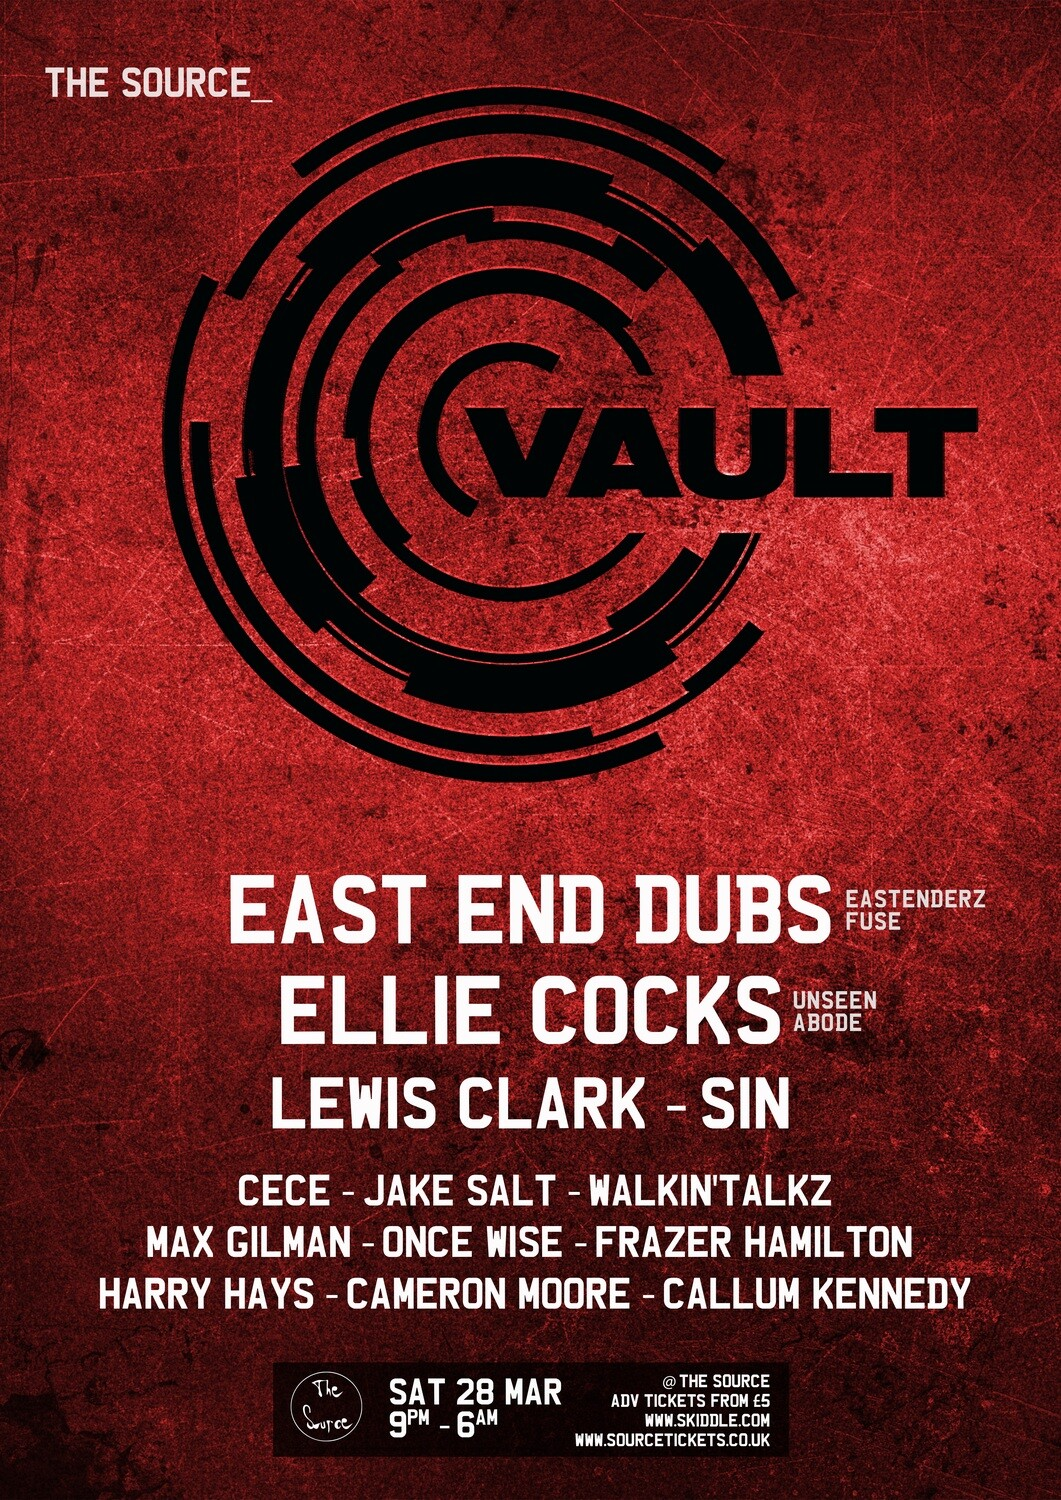 Saturday 28th March 2020 - Vault w/ East End Dubs (Eastenderz/FUSE), Ellie Cocks (Unseen/ABODE), Lewis Clark b2b SiN & more!